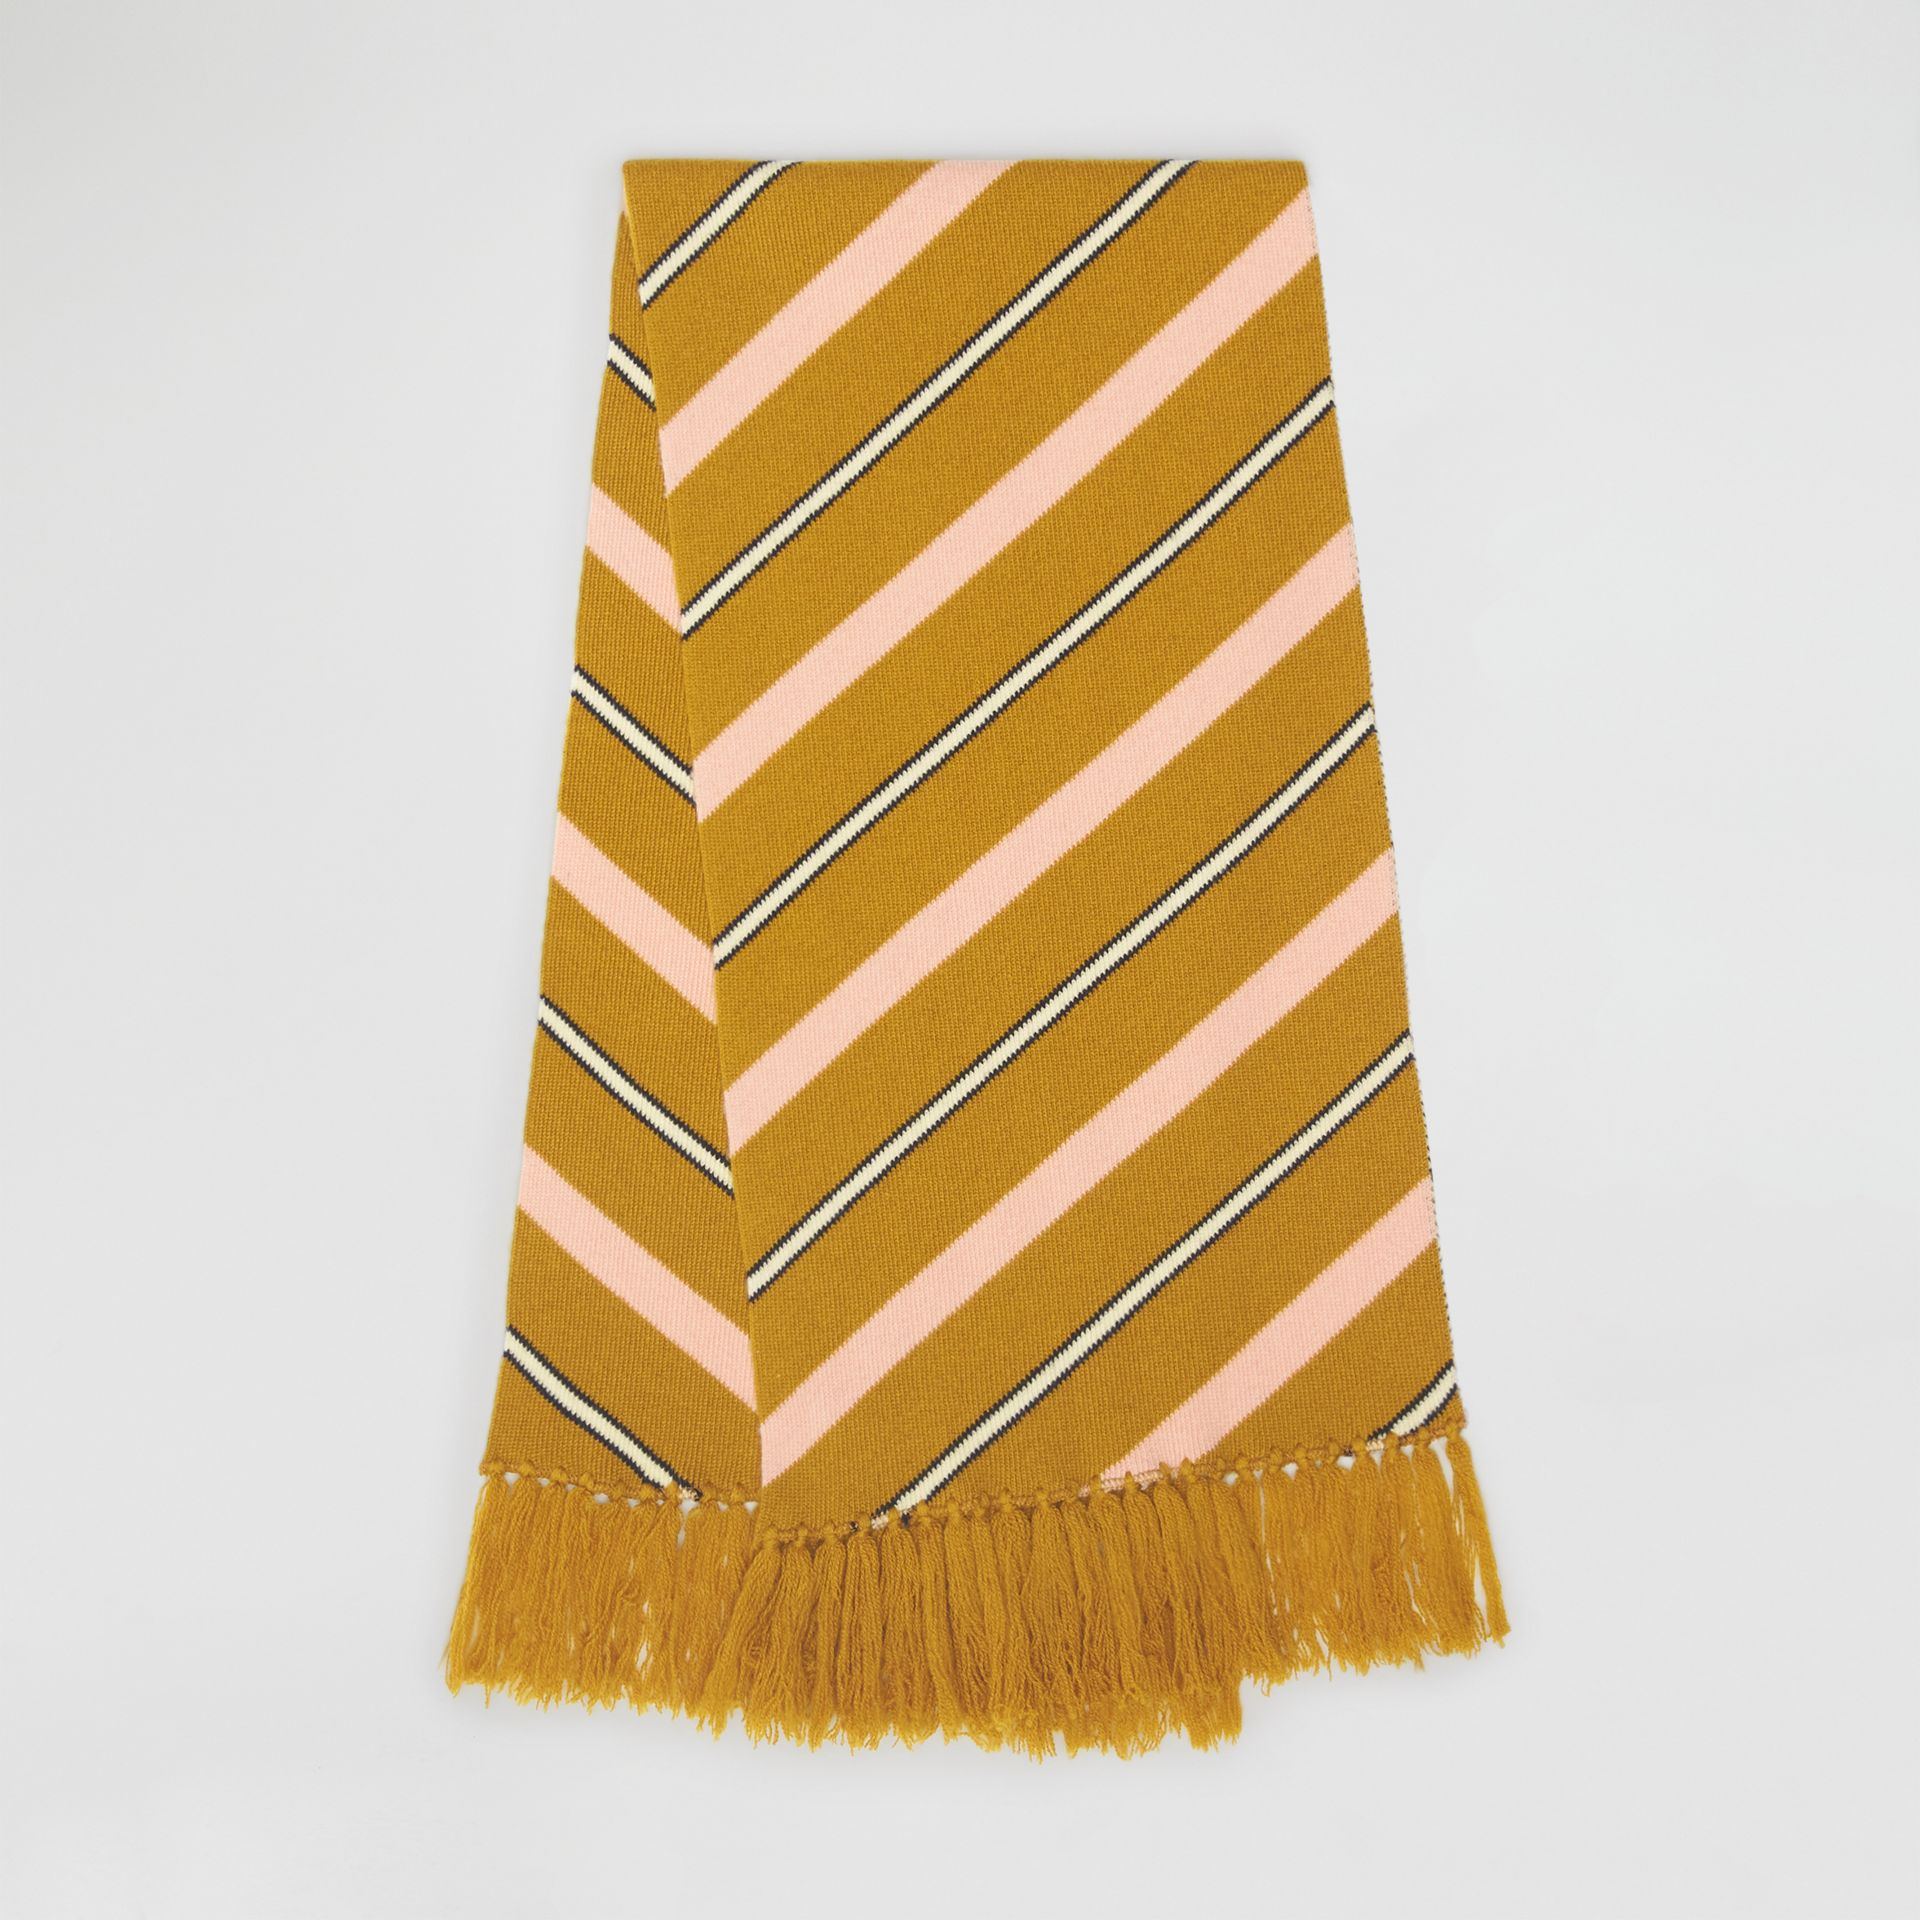 Tri-tone Striped Wool Cashmere Scarf in Dusty Yellow | Burberry - gallery image 0